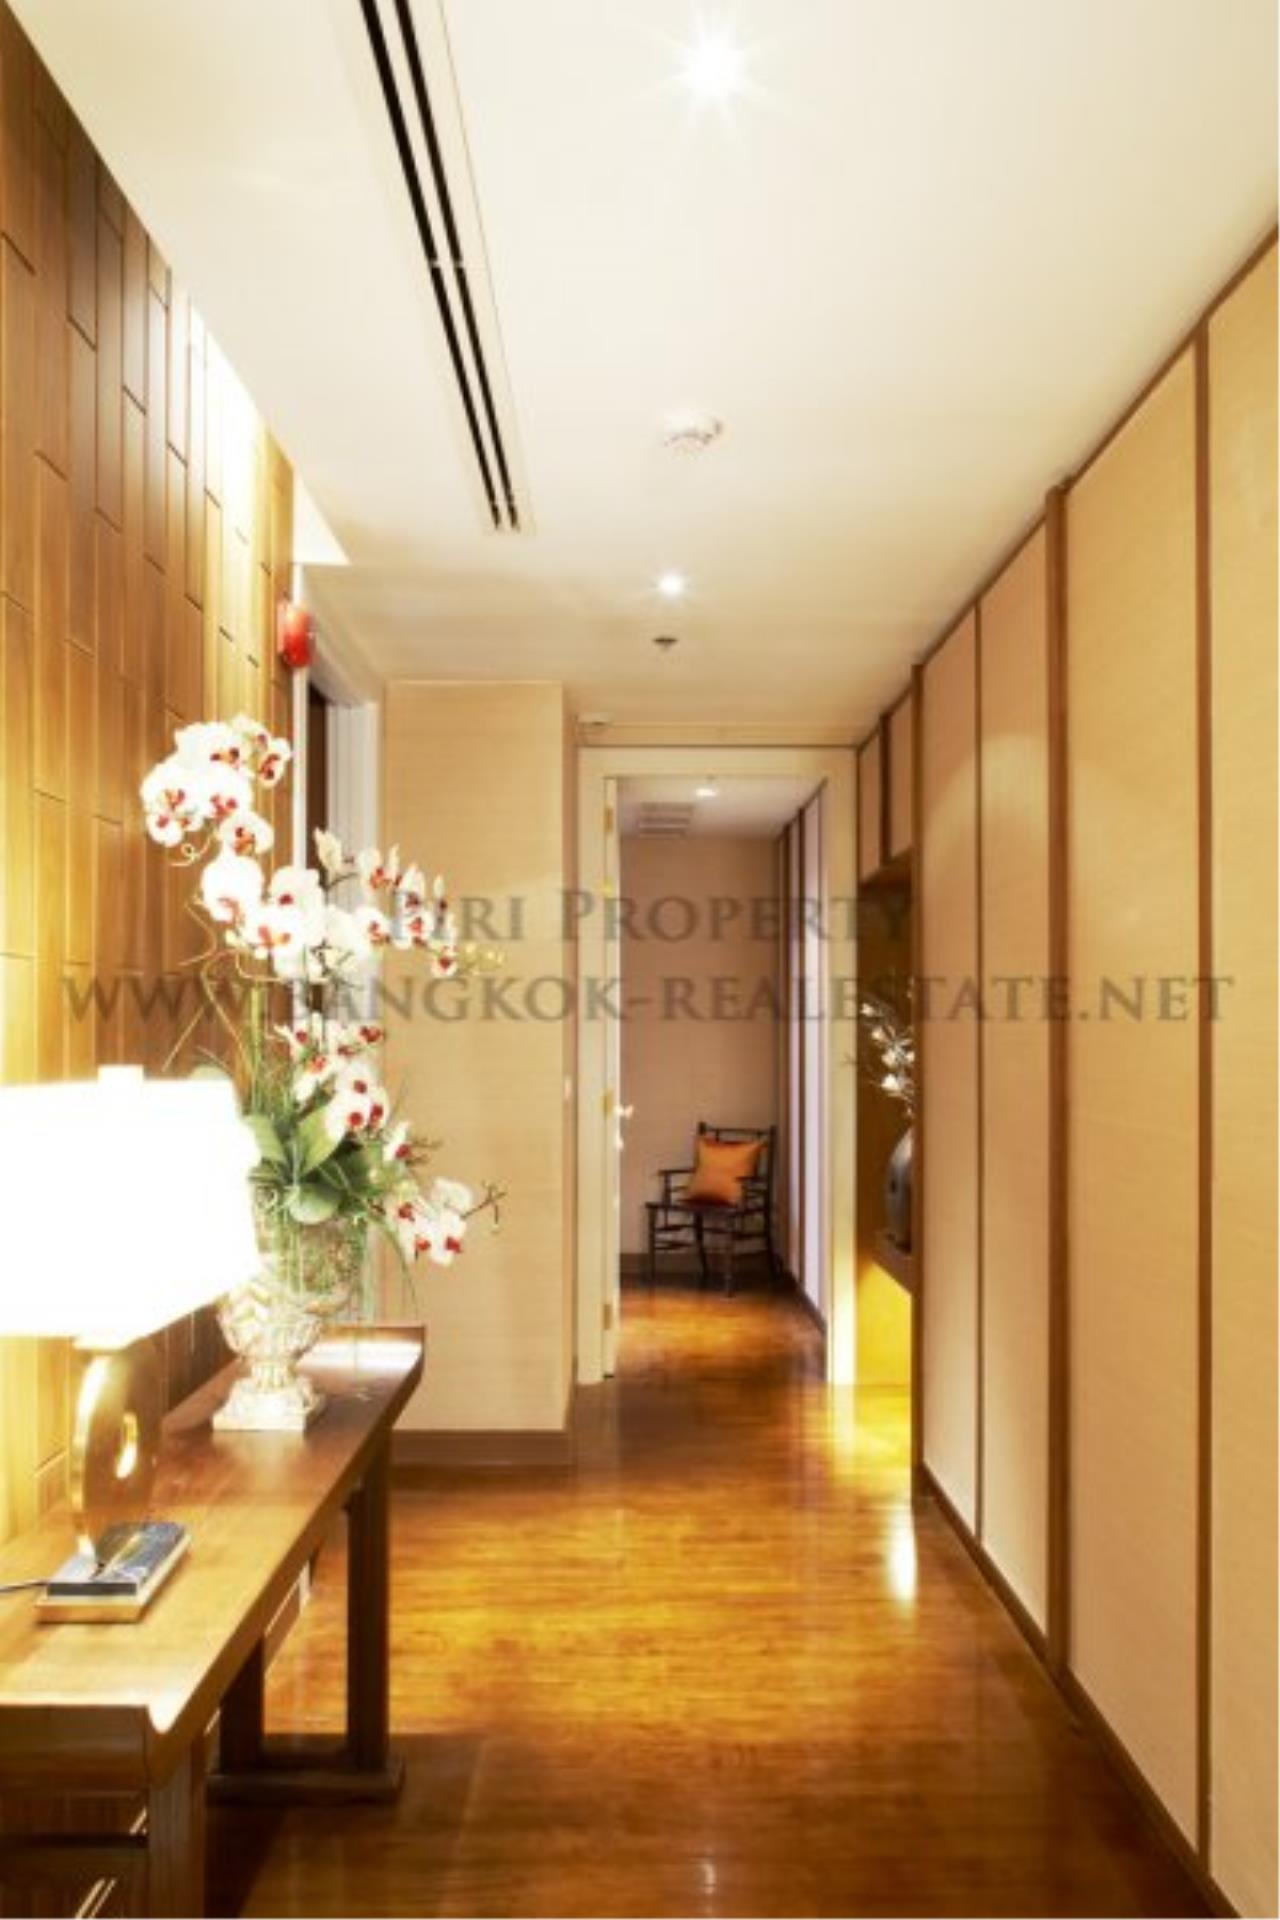 Piri Property Agency's Athenee Residence - 2 Bedroom Condo for Rent 2